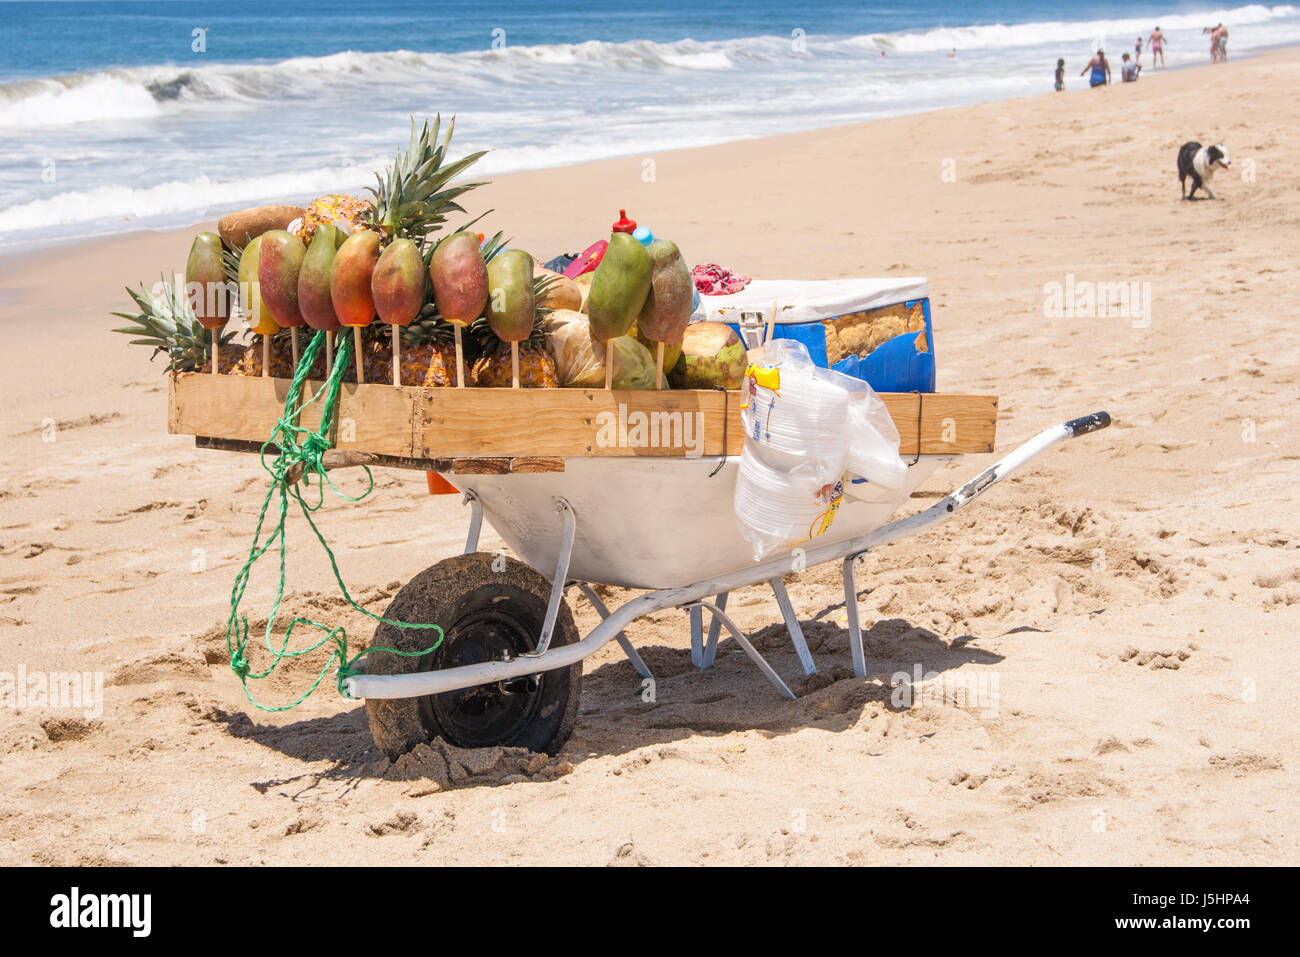 A wheelbarrow uniquely and crudely designed to serve fruit and fruit drinks at a beach, beautiful beach, people - Stock Image